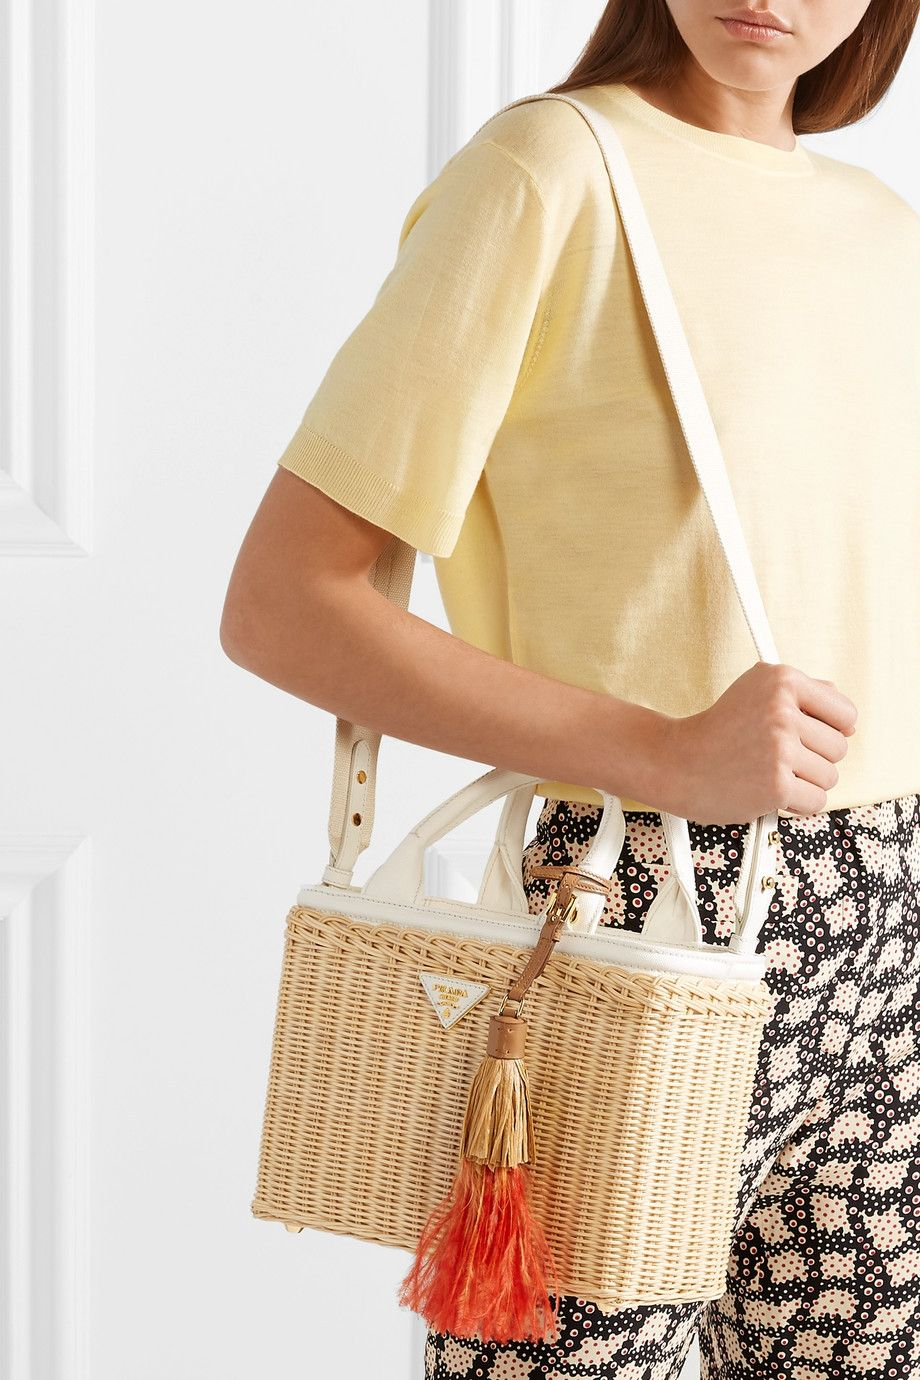 5b48b70c6d48 Prada | Midollino tasseled canvas and leather-trimmed wicker tote |  NET-A-PORTER.COM